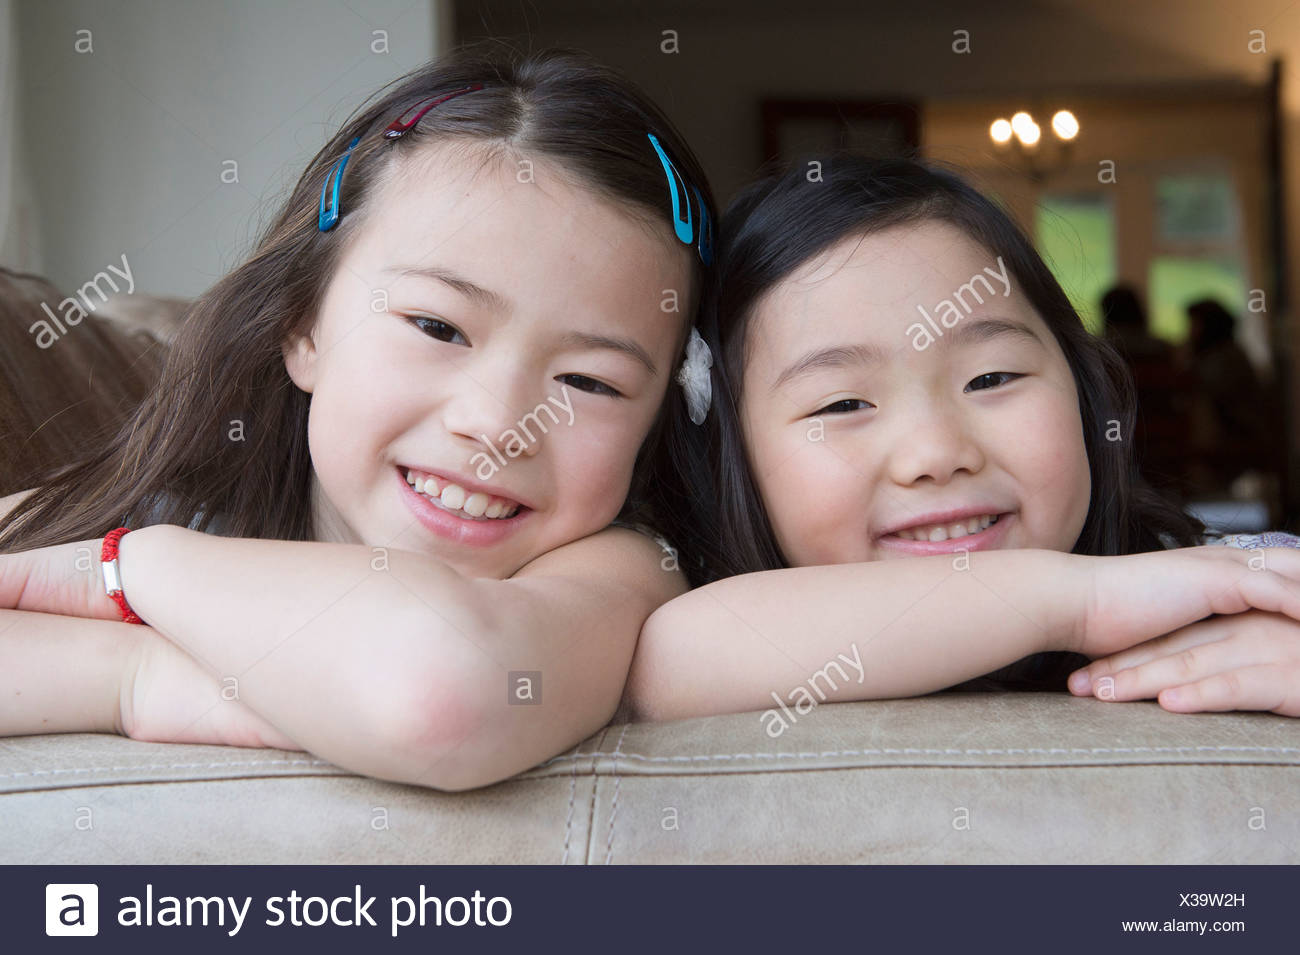 Portrait of two young girls leaning on sofa Stock Photo